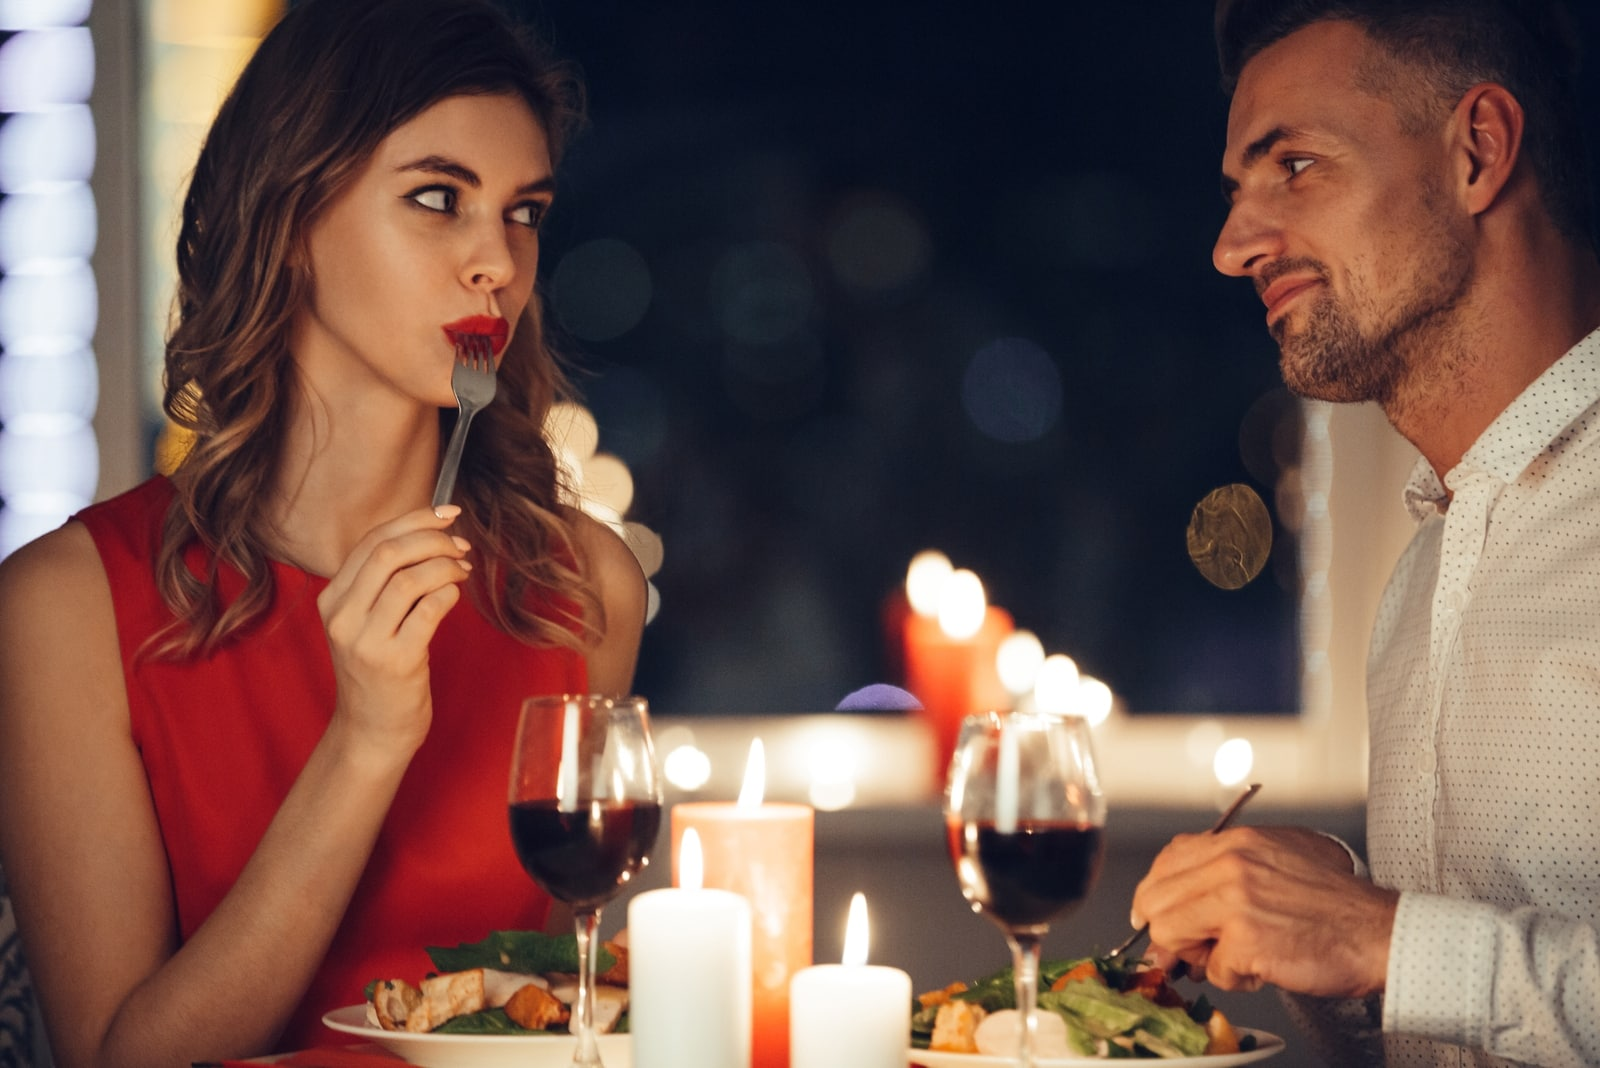 man and woman having dinner at home